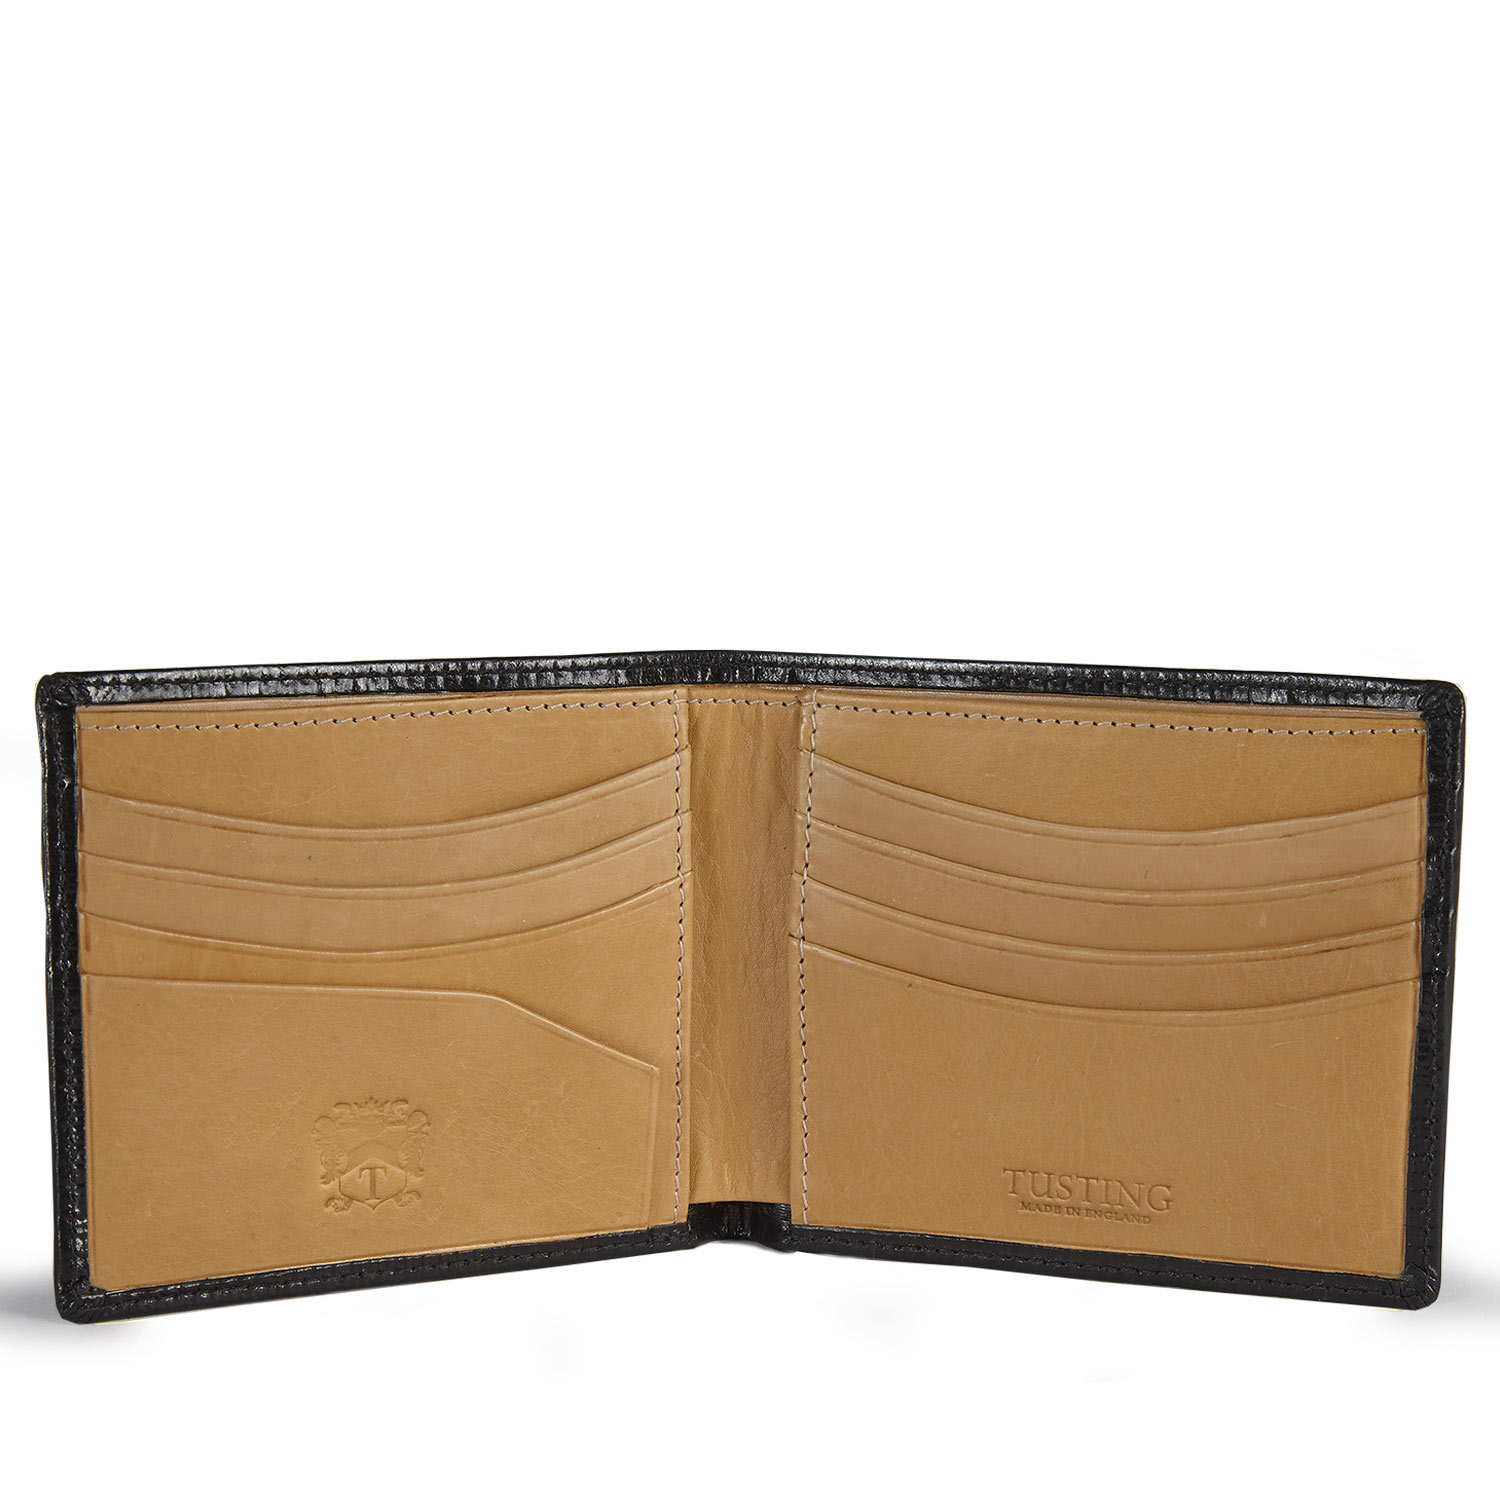 Tusting Black and Natural Tan Leather Hip Wallet